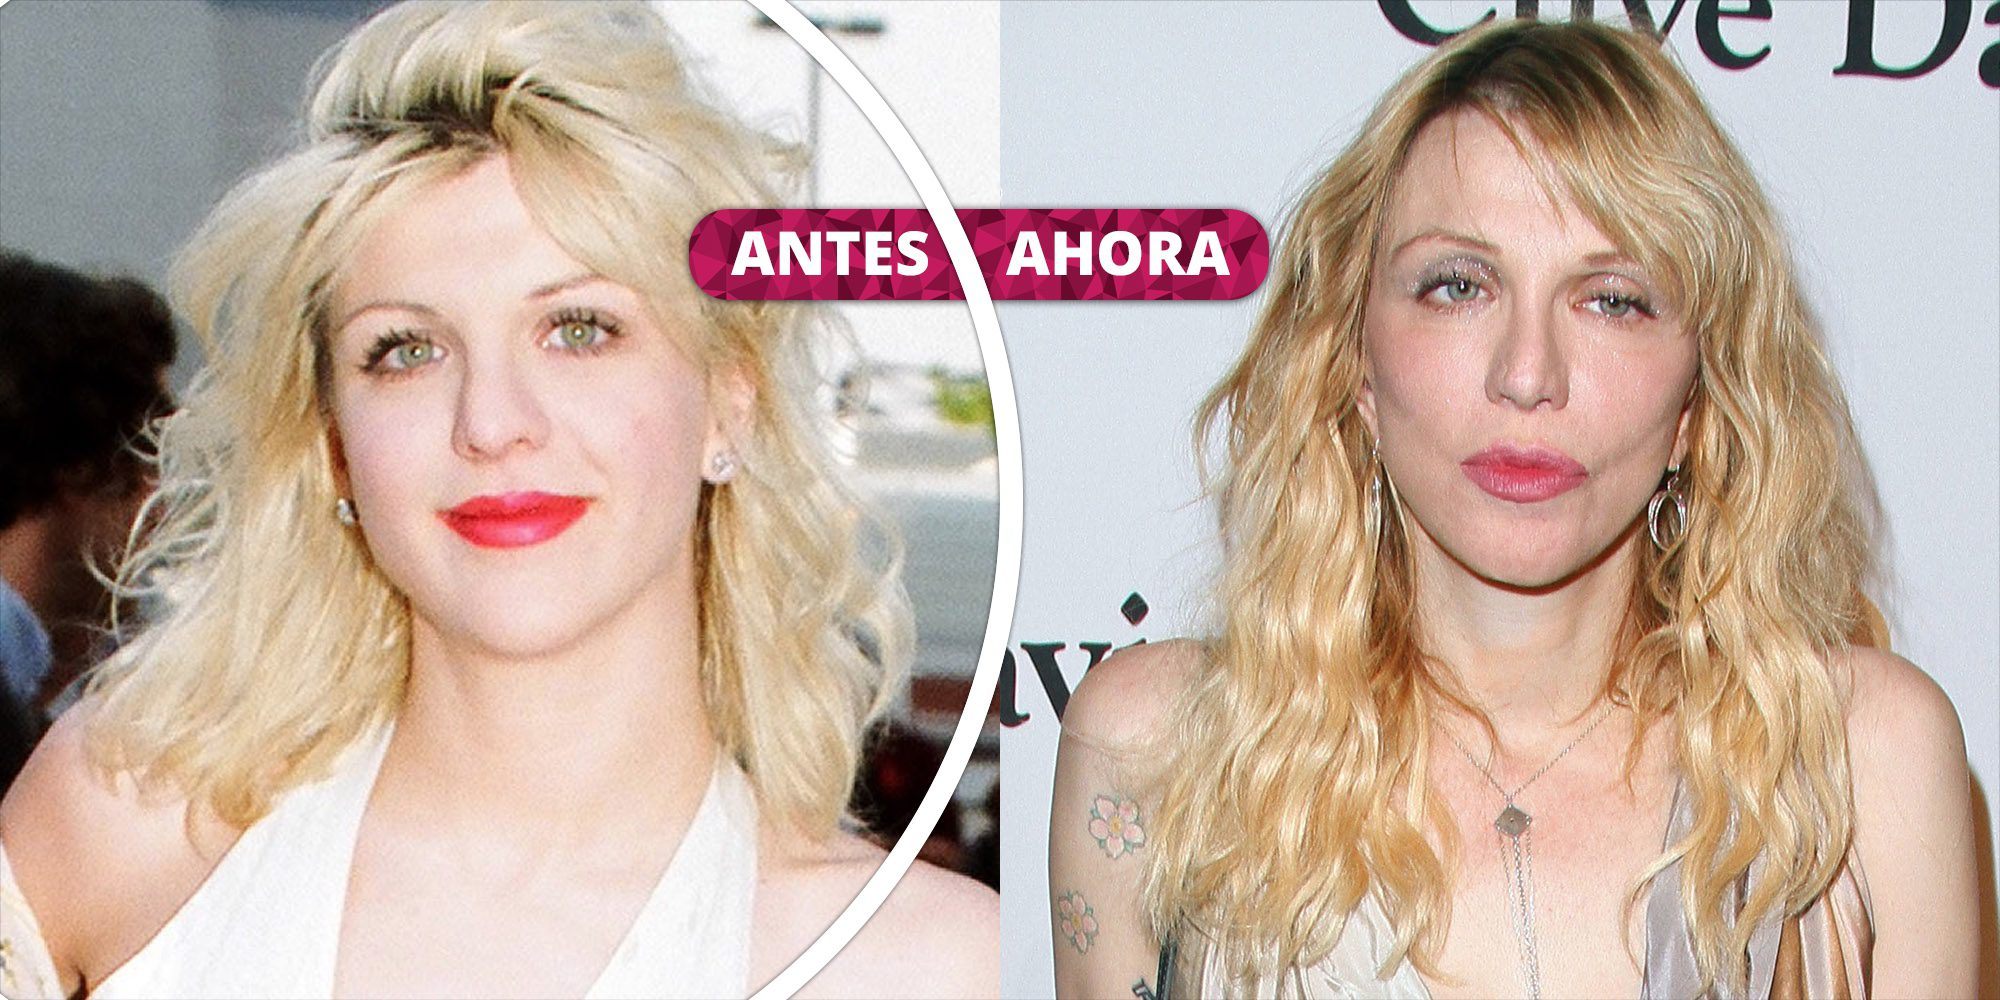 Así ha cambiado Courtney Love: La transformación de la viuda de Kurt Cobain